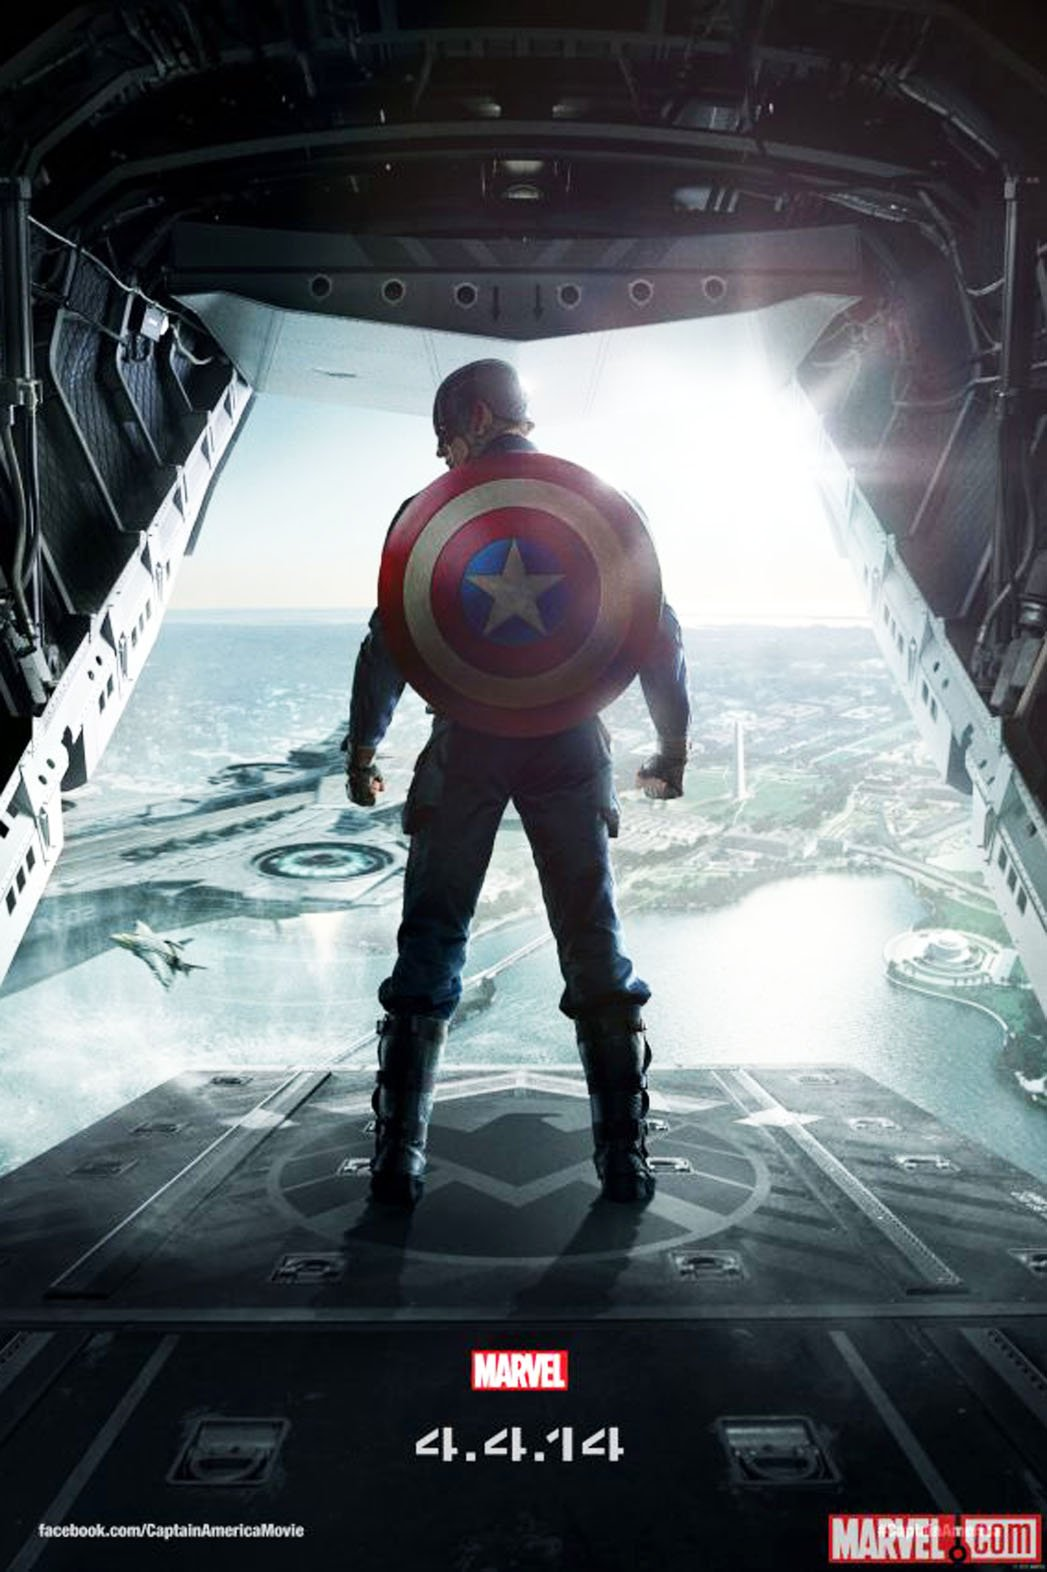 Captain America:The Winter Soldier Trailer Released